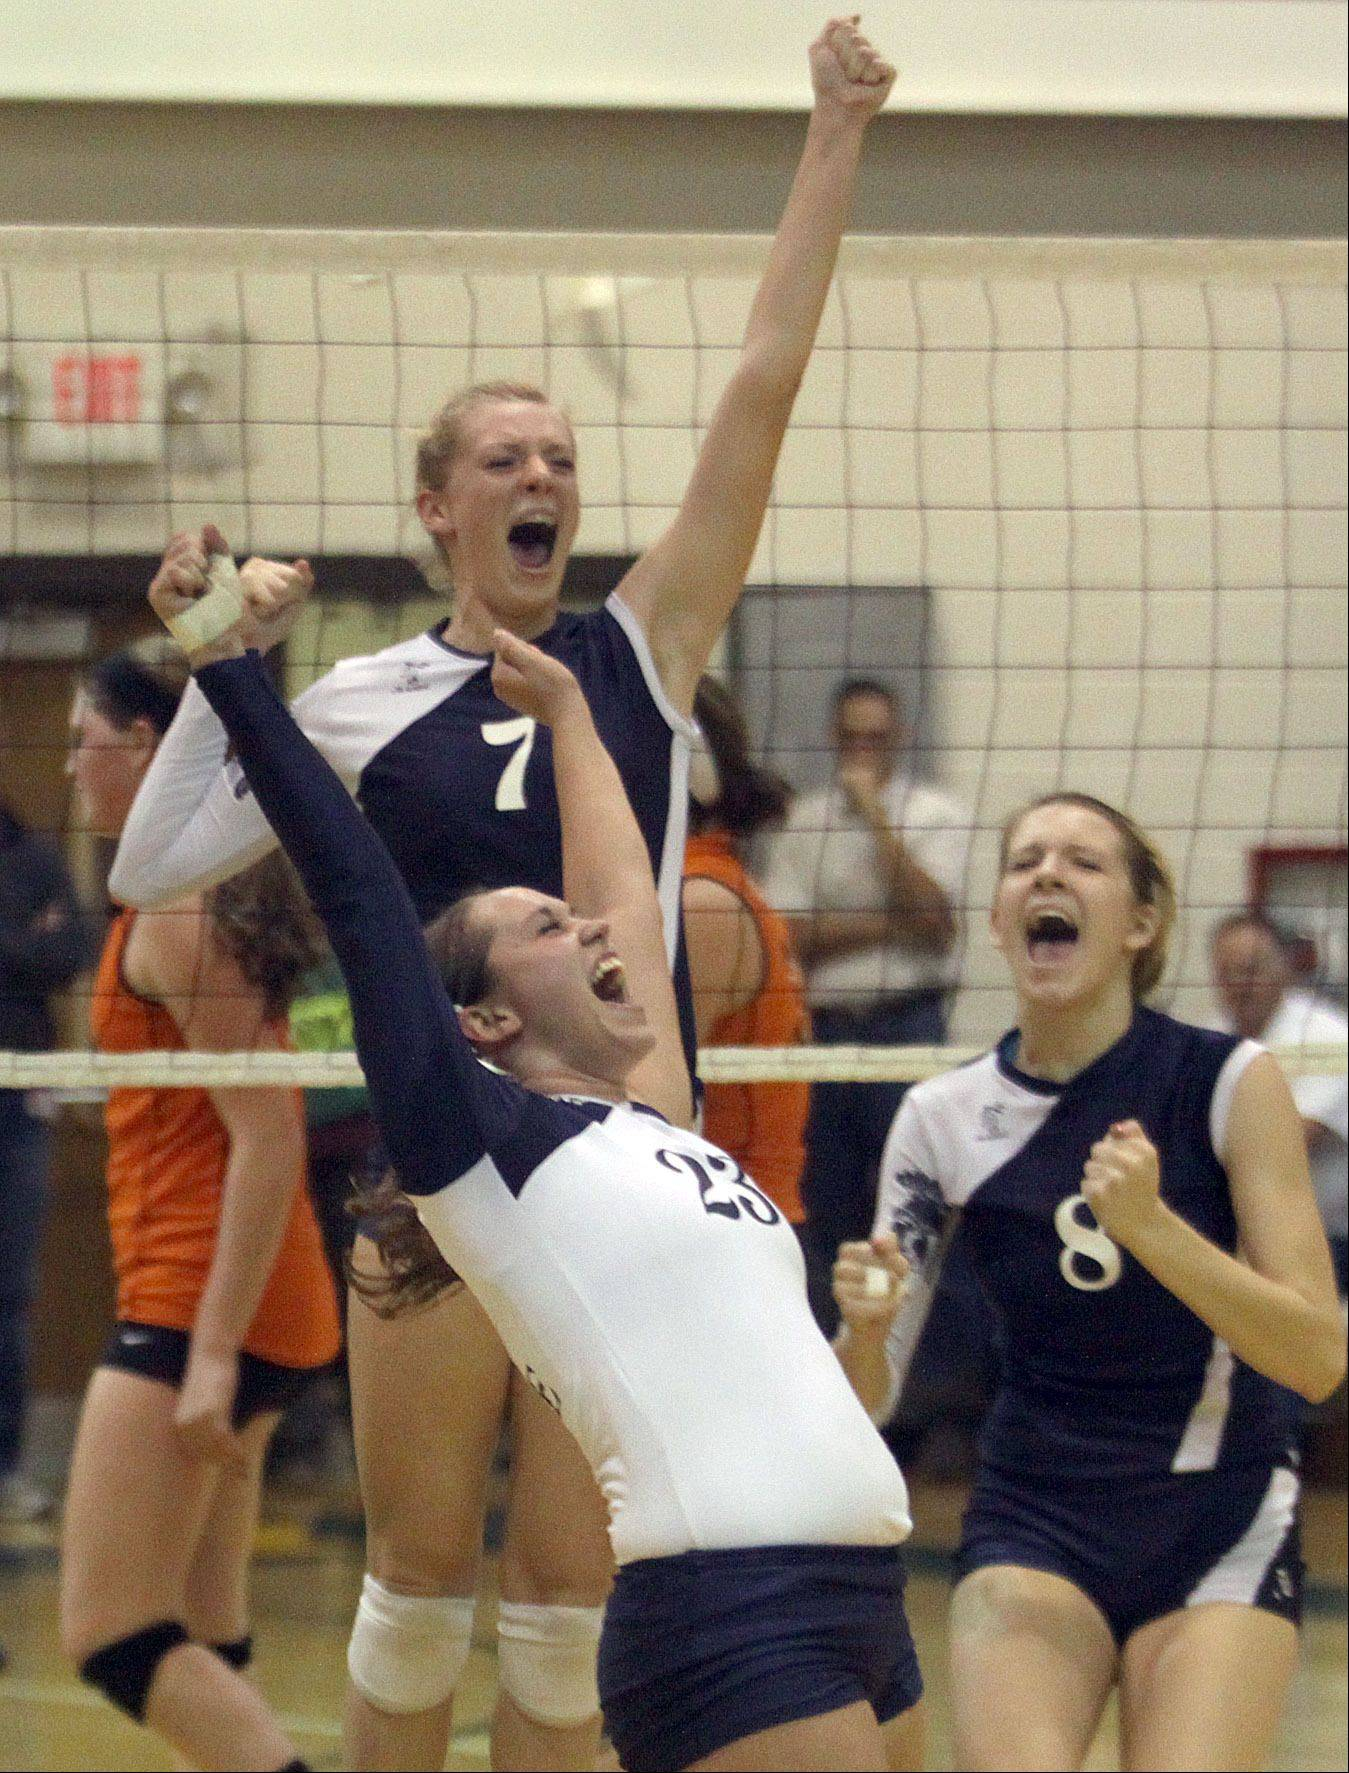 Cary-Grove players Morgan Lee, upper left, Micah Duzey, lower left, and Abby Schebel, right celebrate a regional game victory over Crystal Lake Central at Crystal Lake South High School on Monday night.